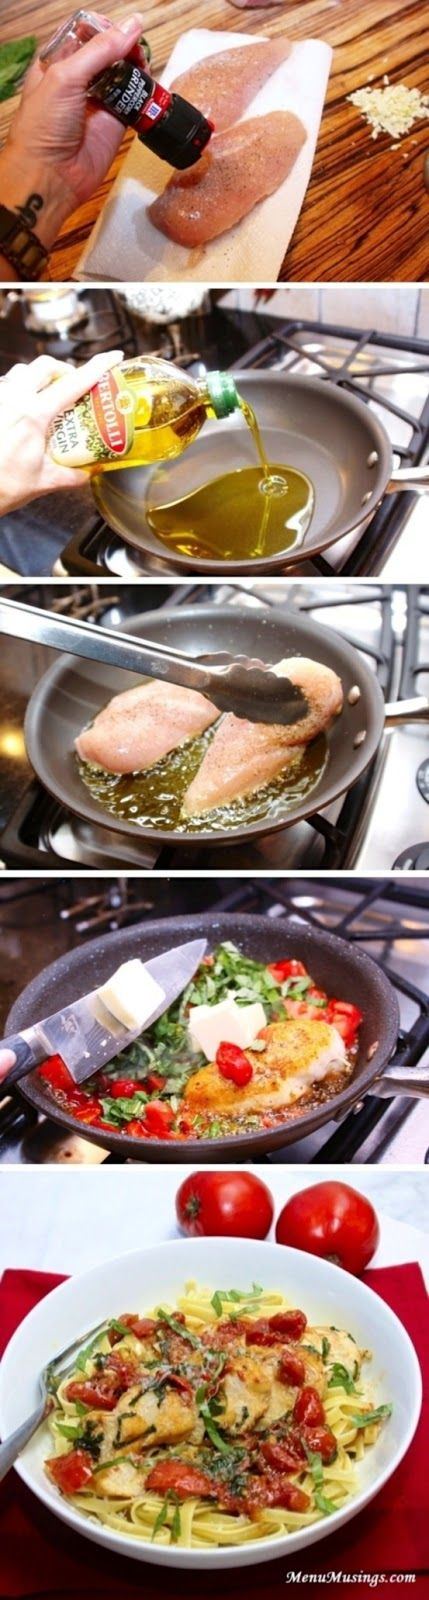 Tomato Basil Chicken, I'll be able to make this with fresh tomatoes and basil from my garden soon!!!!